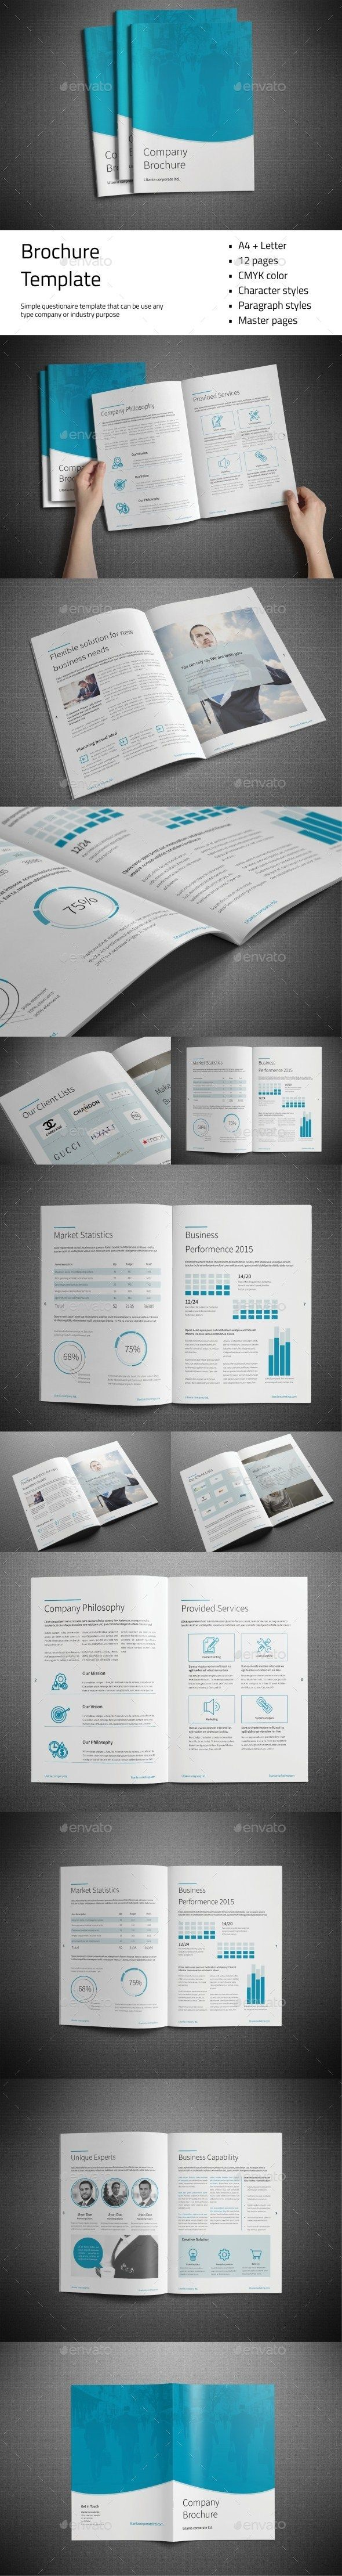 Company Brochure Template InDesign INDD design Download